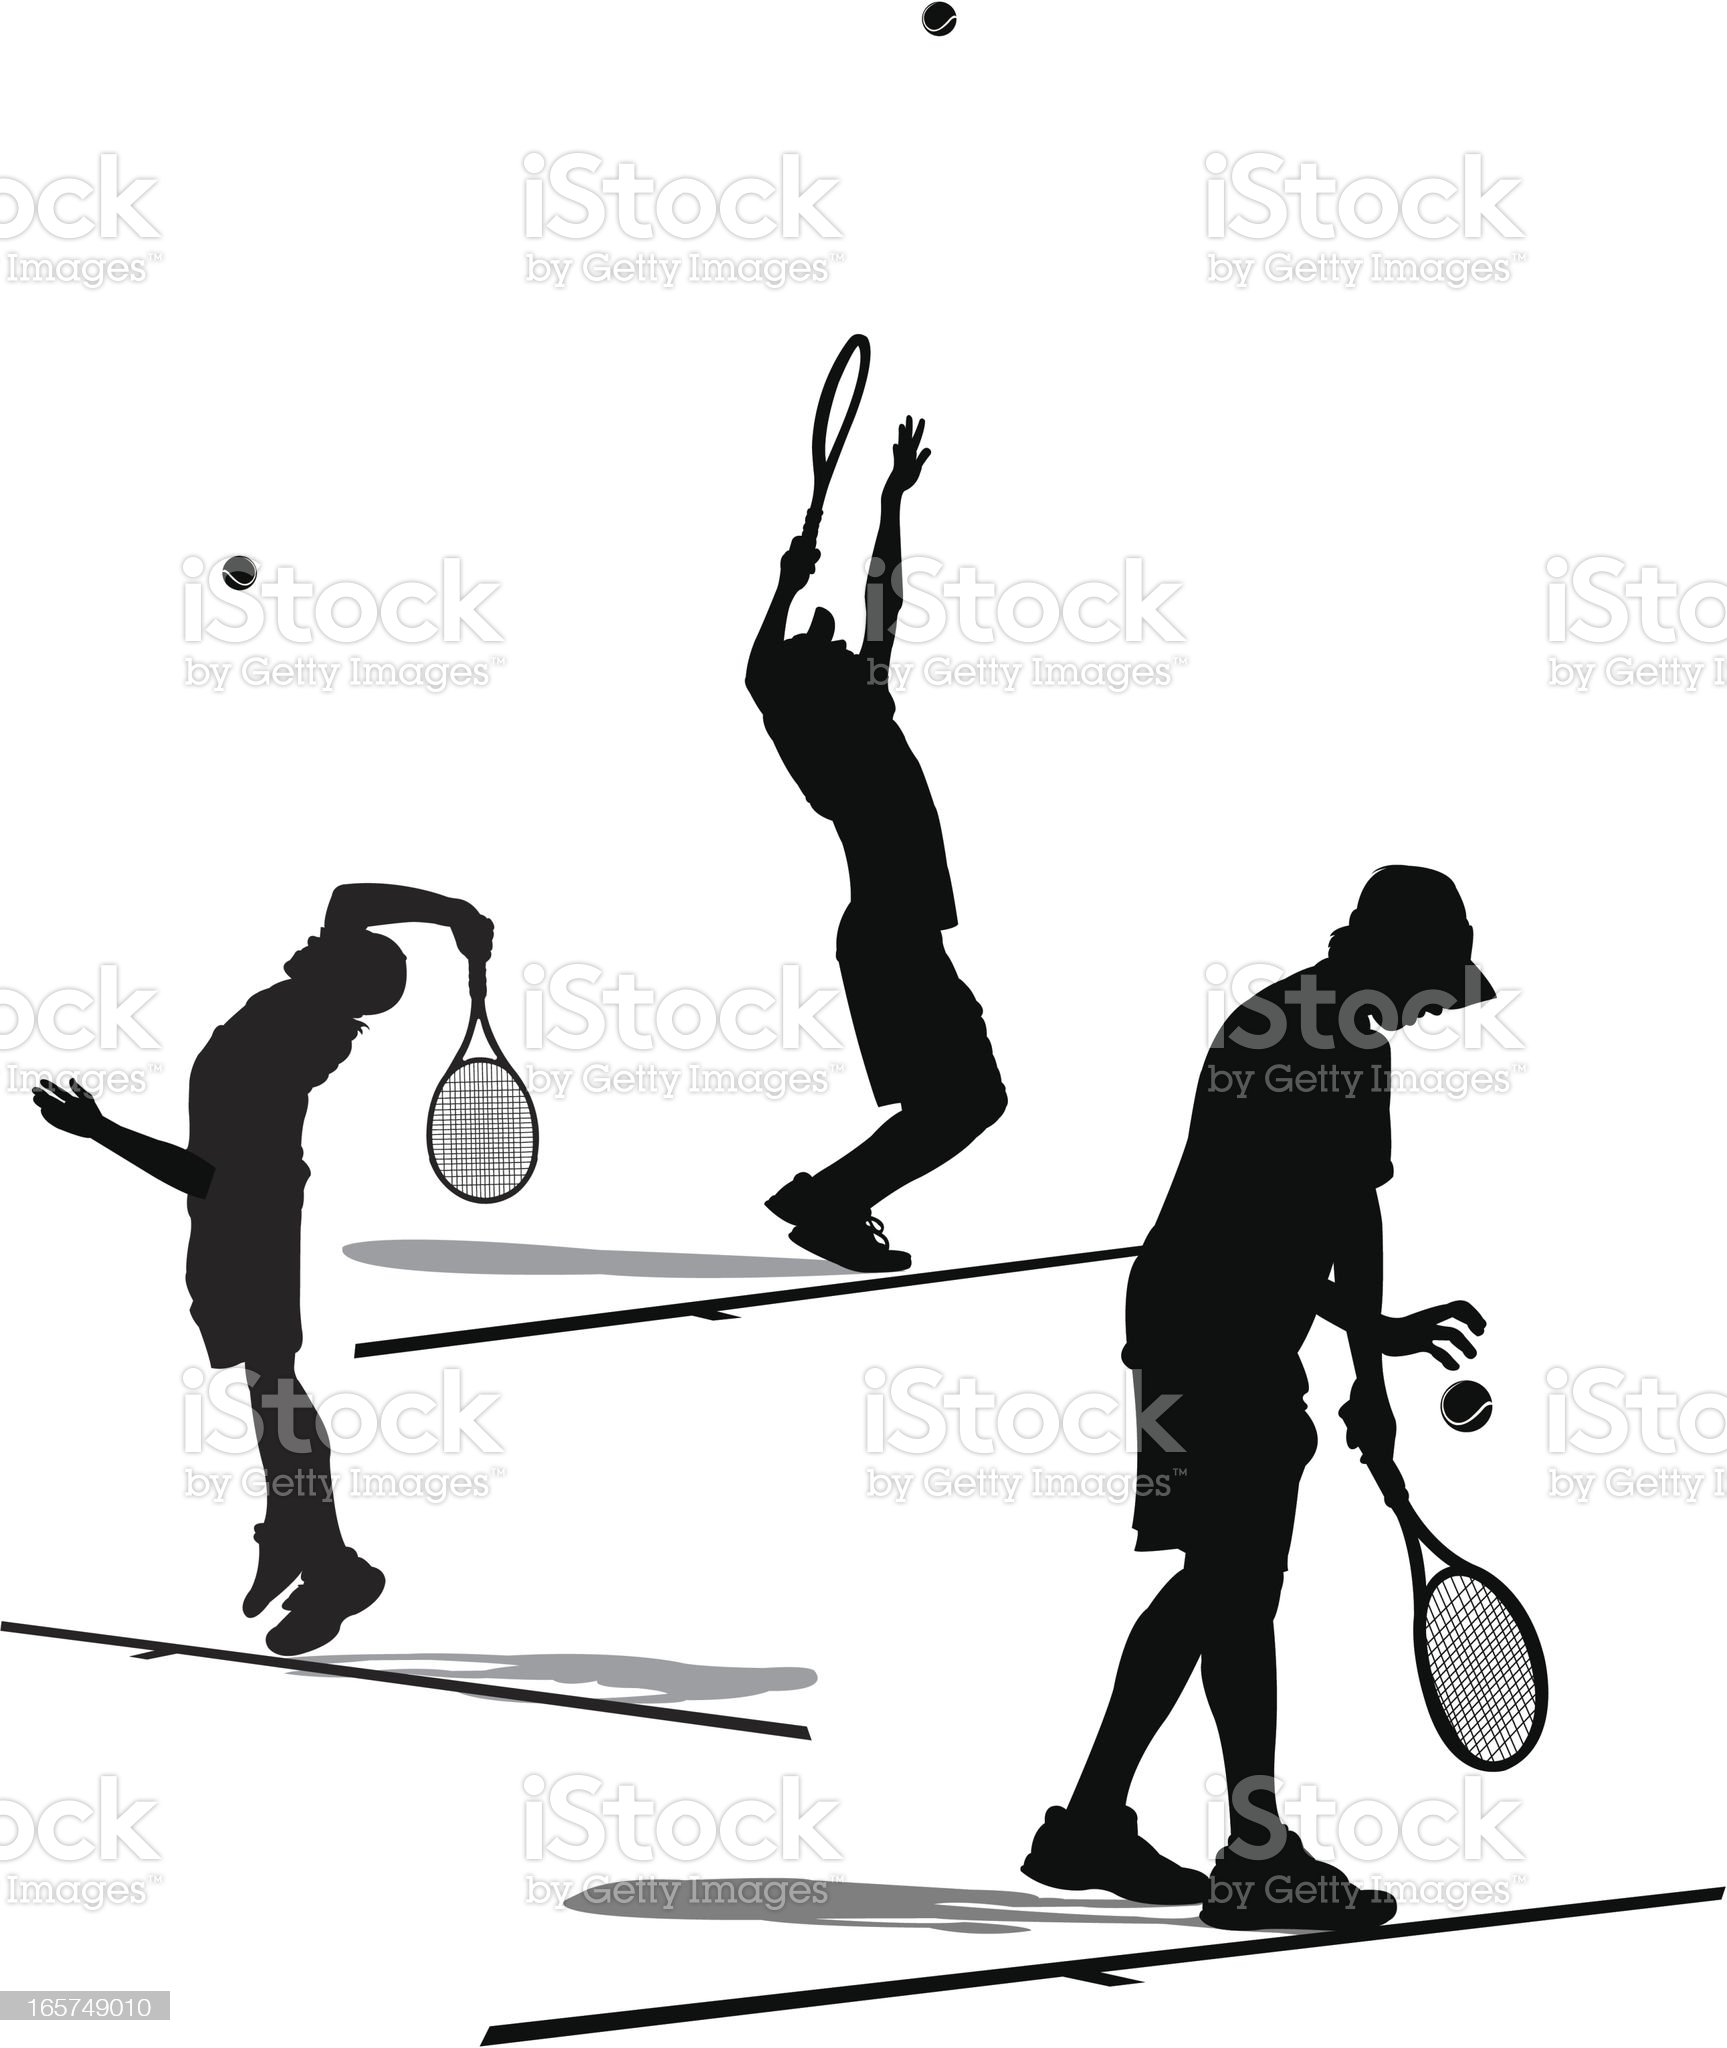 Tennis Player Serving - Silhouette Collection royalty-free stock vector art